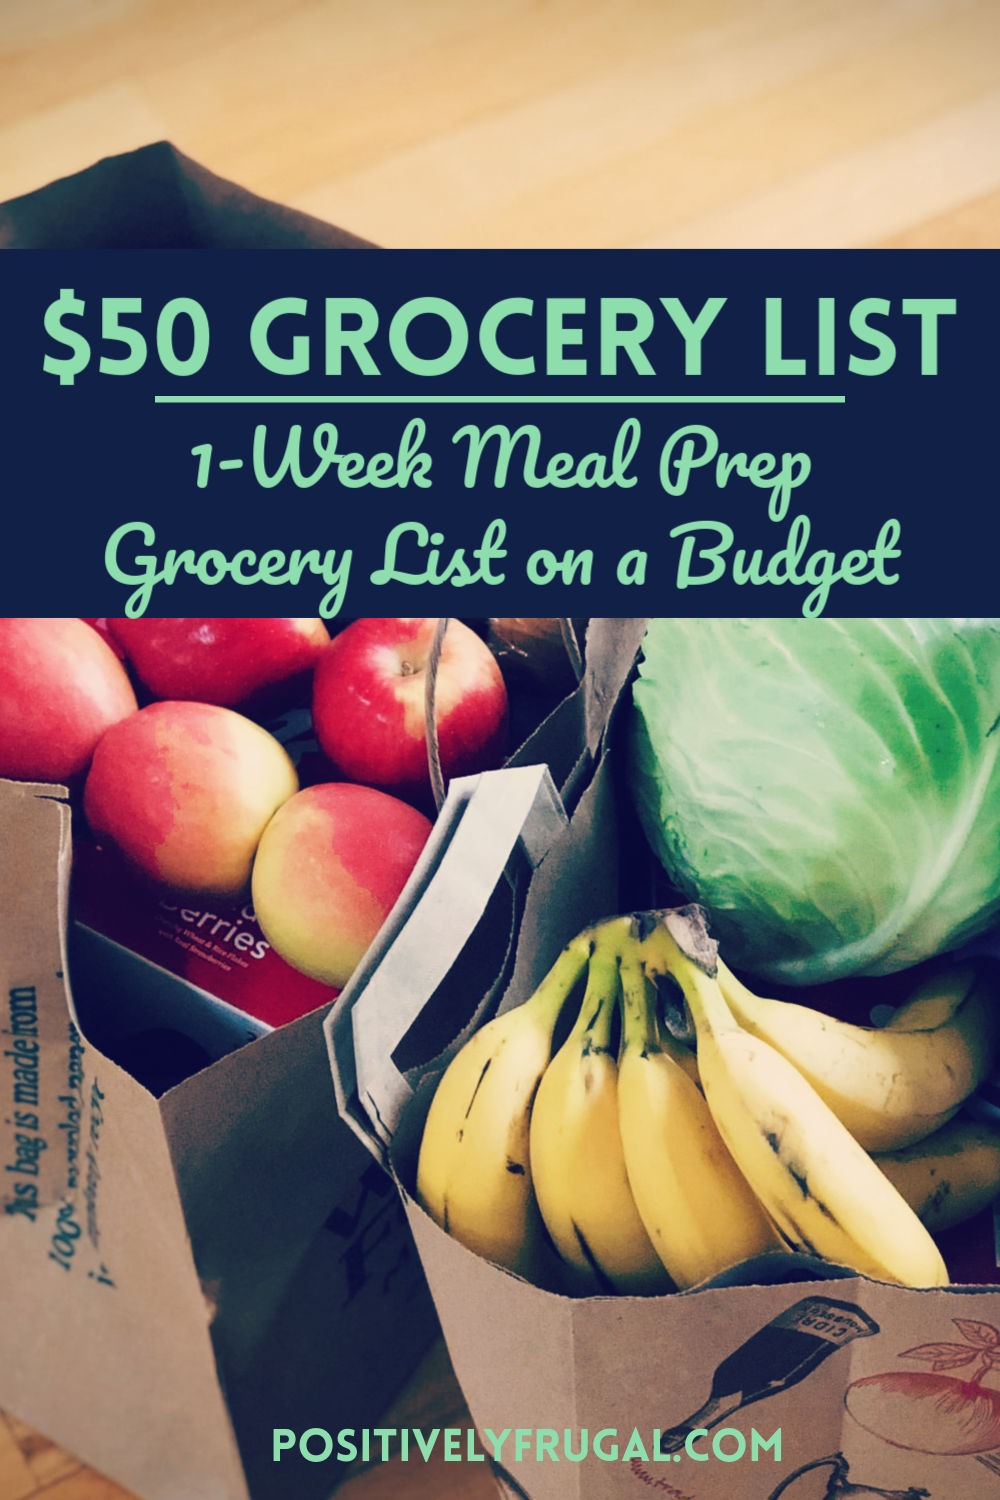 $50 Grocery List by PositivelyFrugal.com